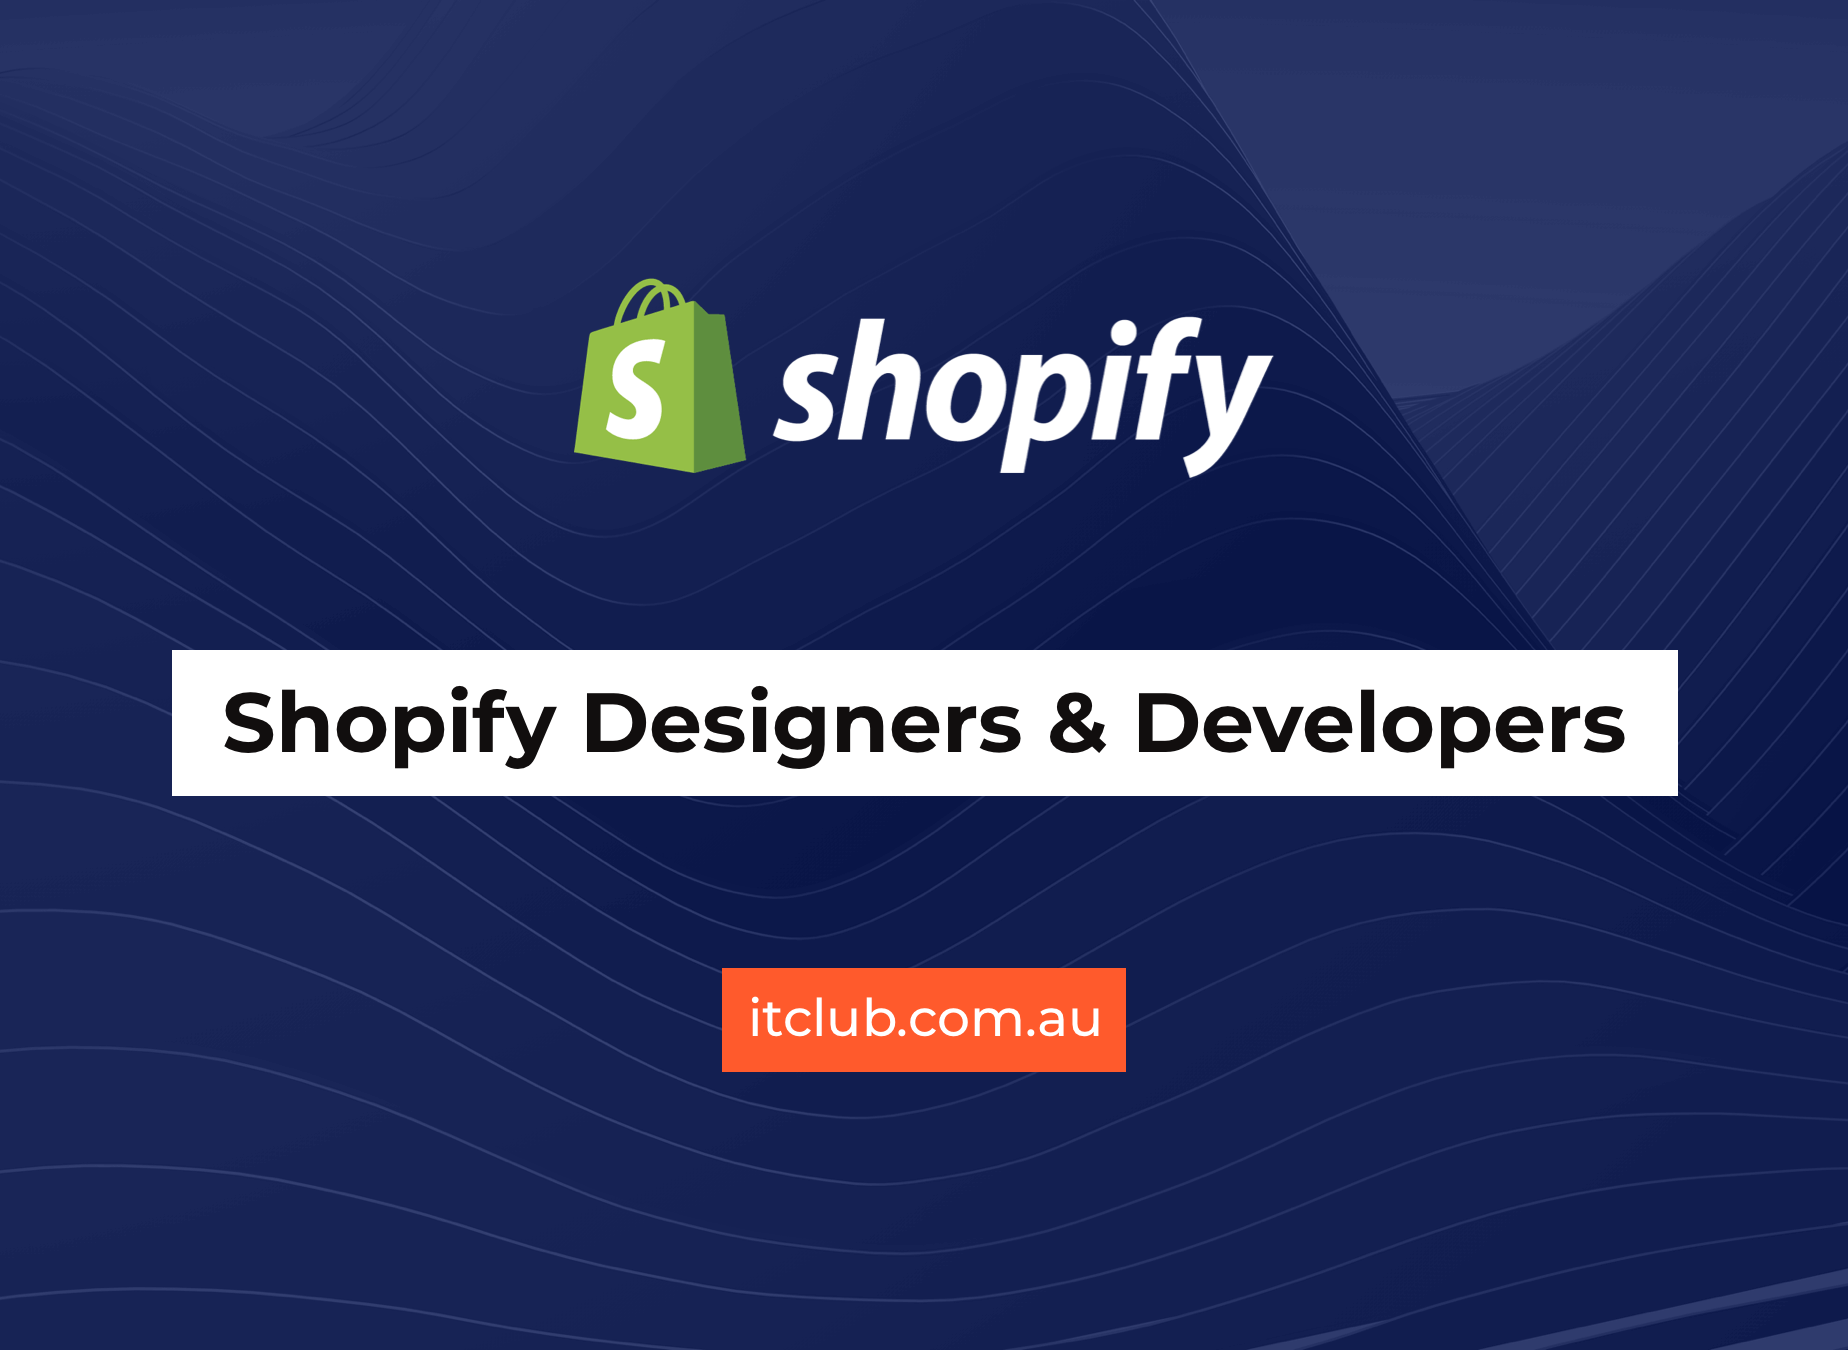 Want to set up a new Shopify store or optimise your existing store for conversion?